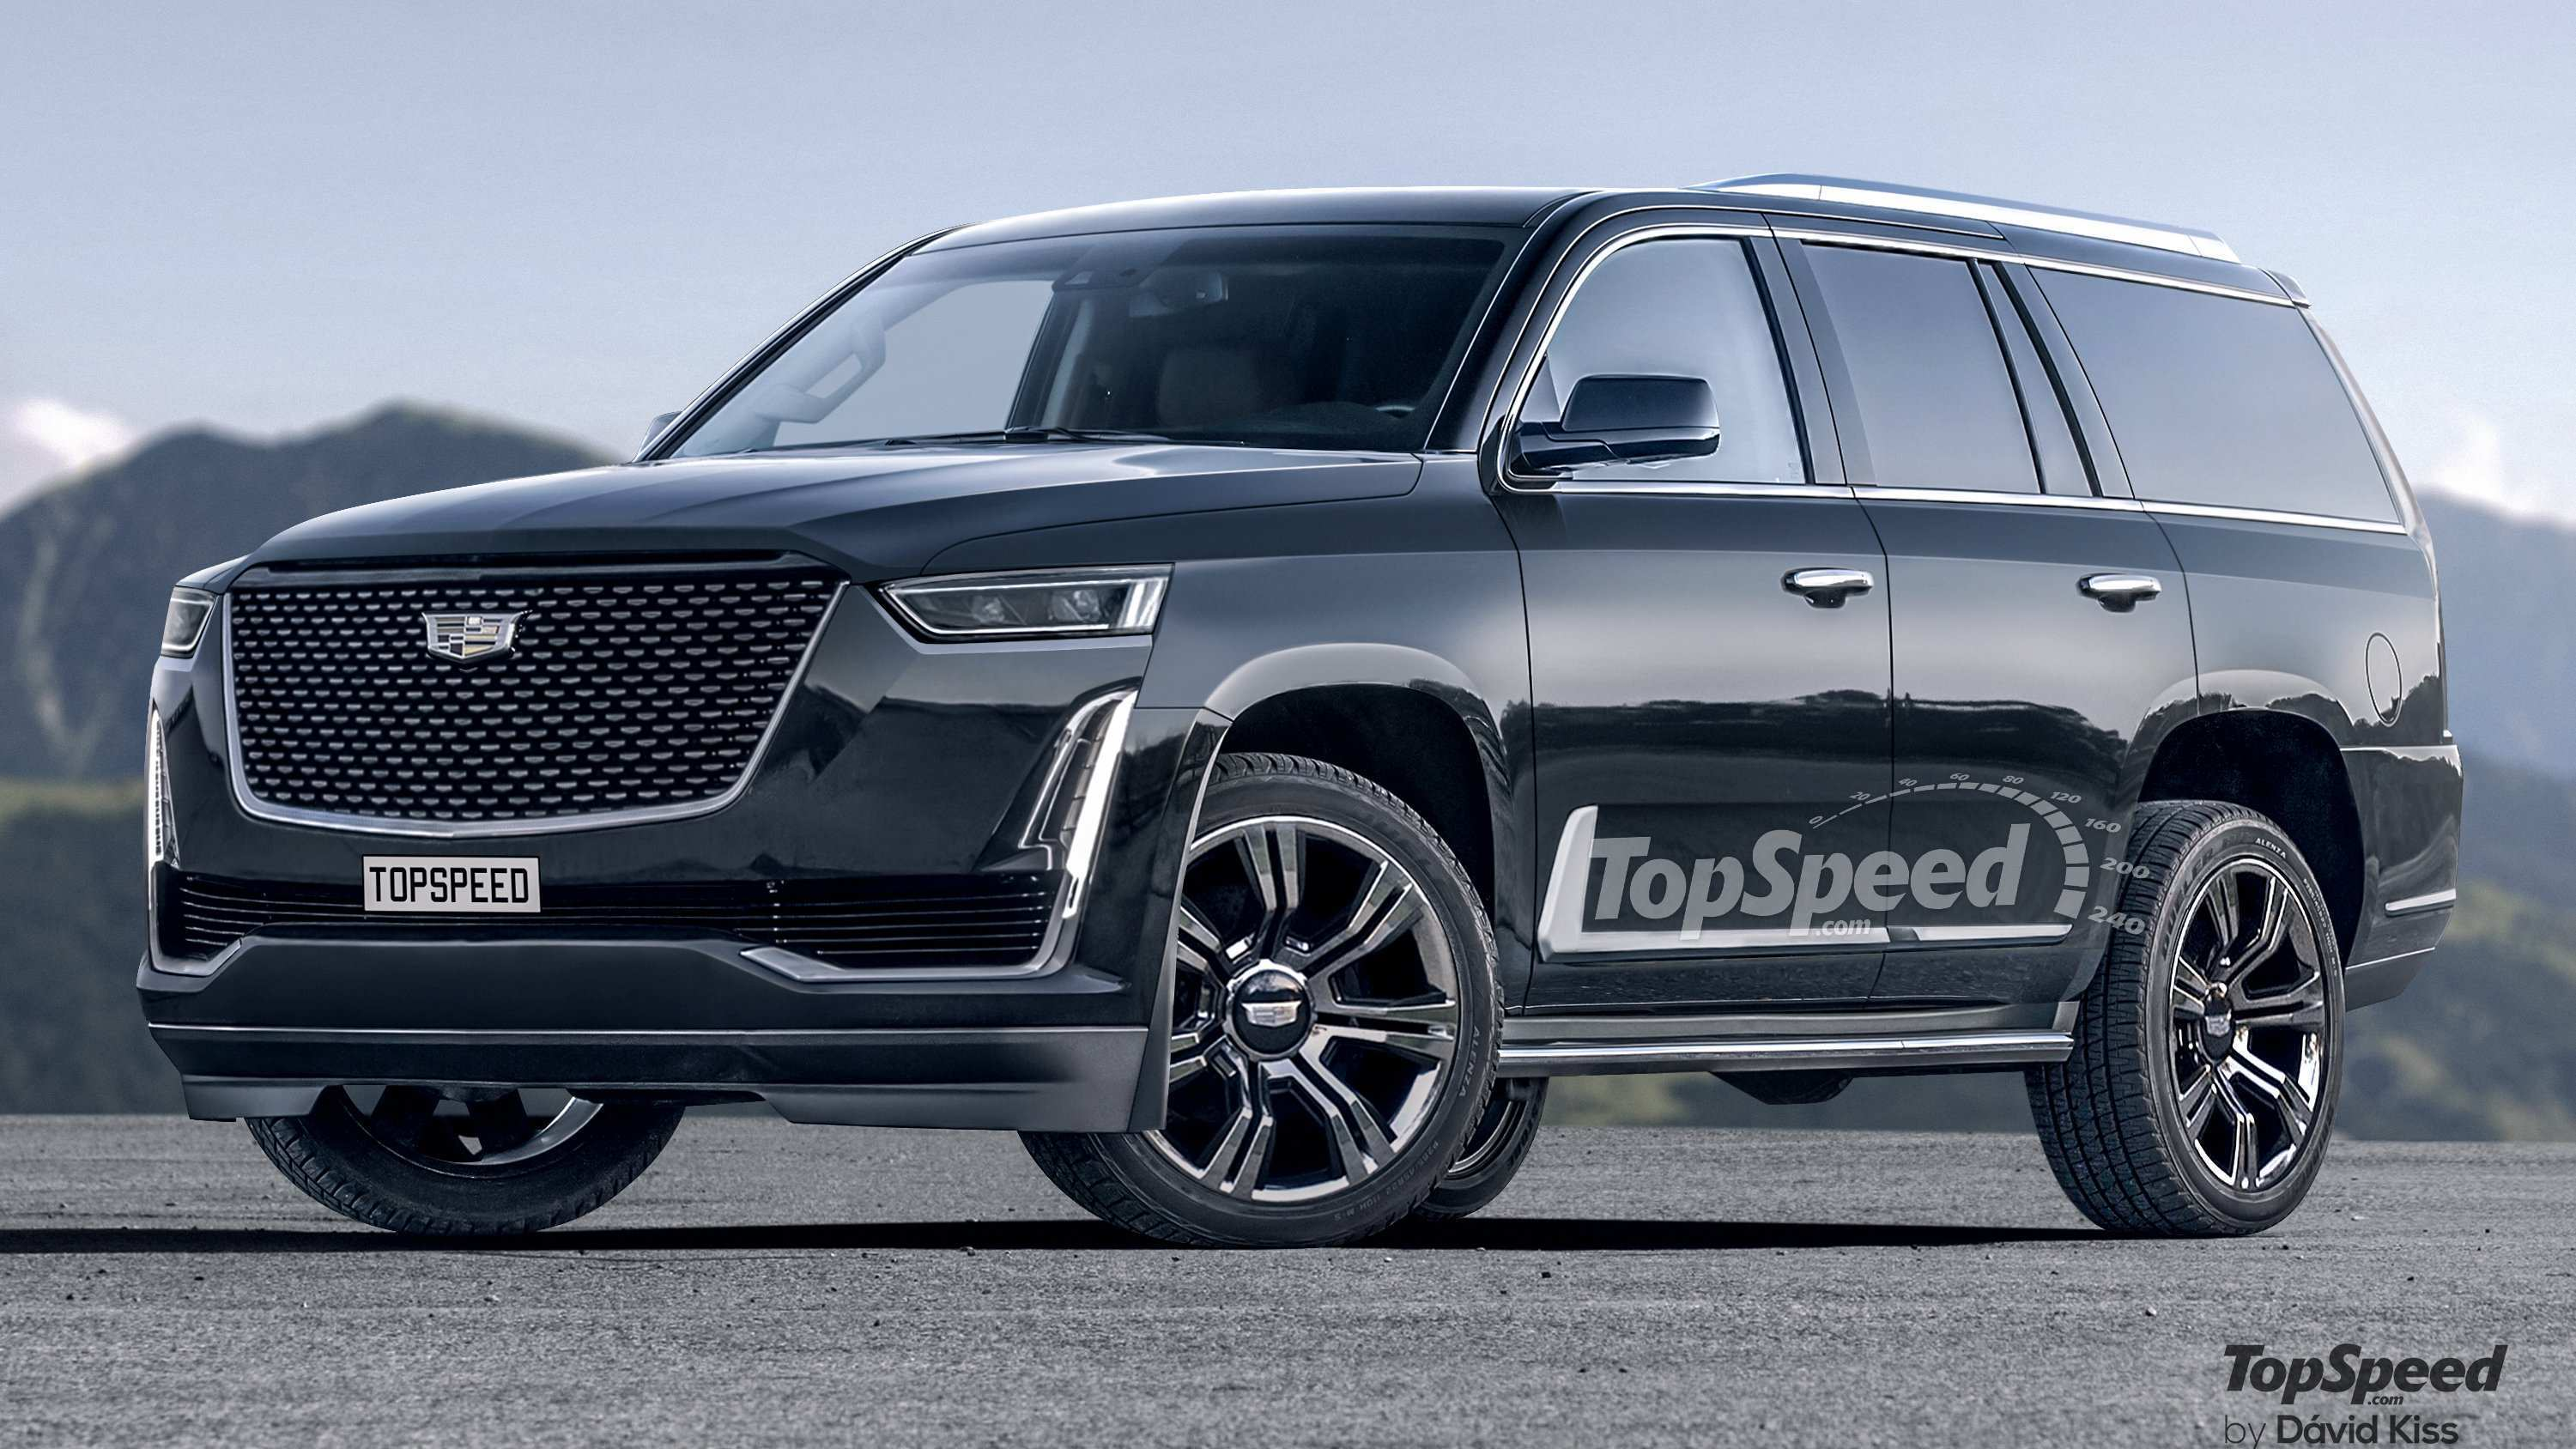 76 New 2019 Cadillac Escalade Redesign Speed Test with 2019 Cadillac Escalade Redesign